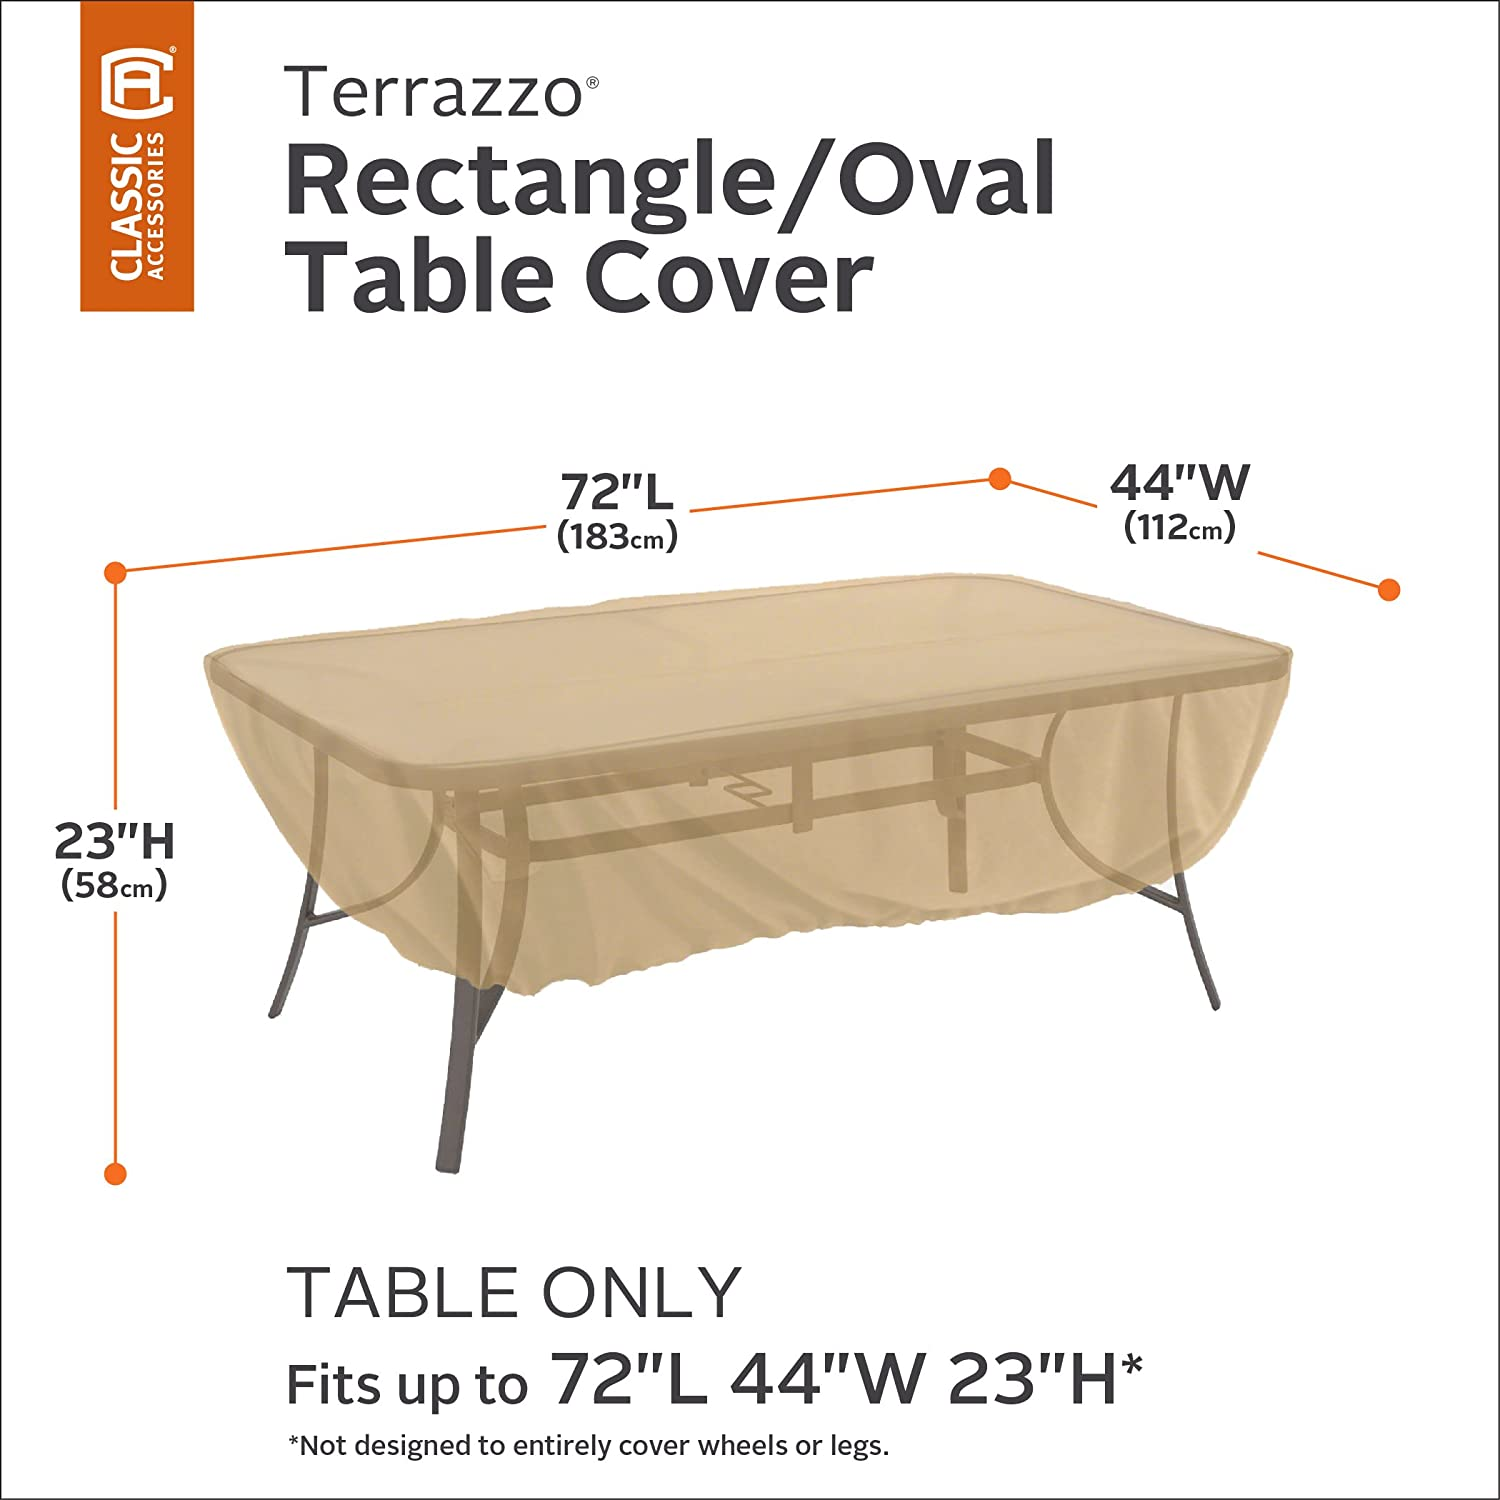 Awesome Amazon.com : Classic Accessories Terrazzo Rectangular/Oval Patio Table Cover    All Weather Protection Outdoor Furniture Cover (58242 EC) : Outdoor Table  ... Part 13